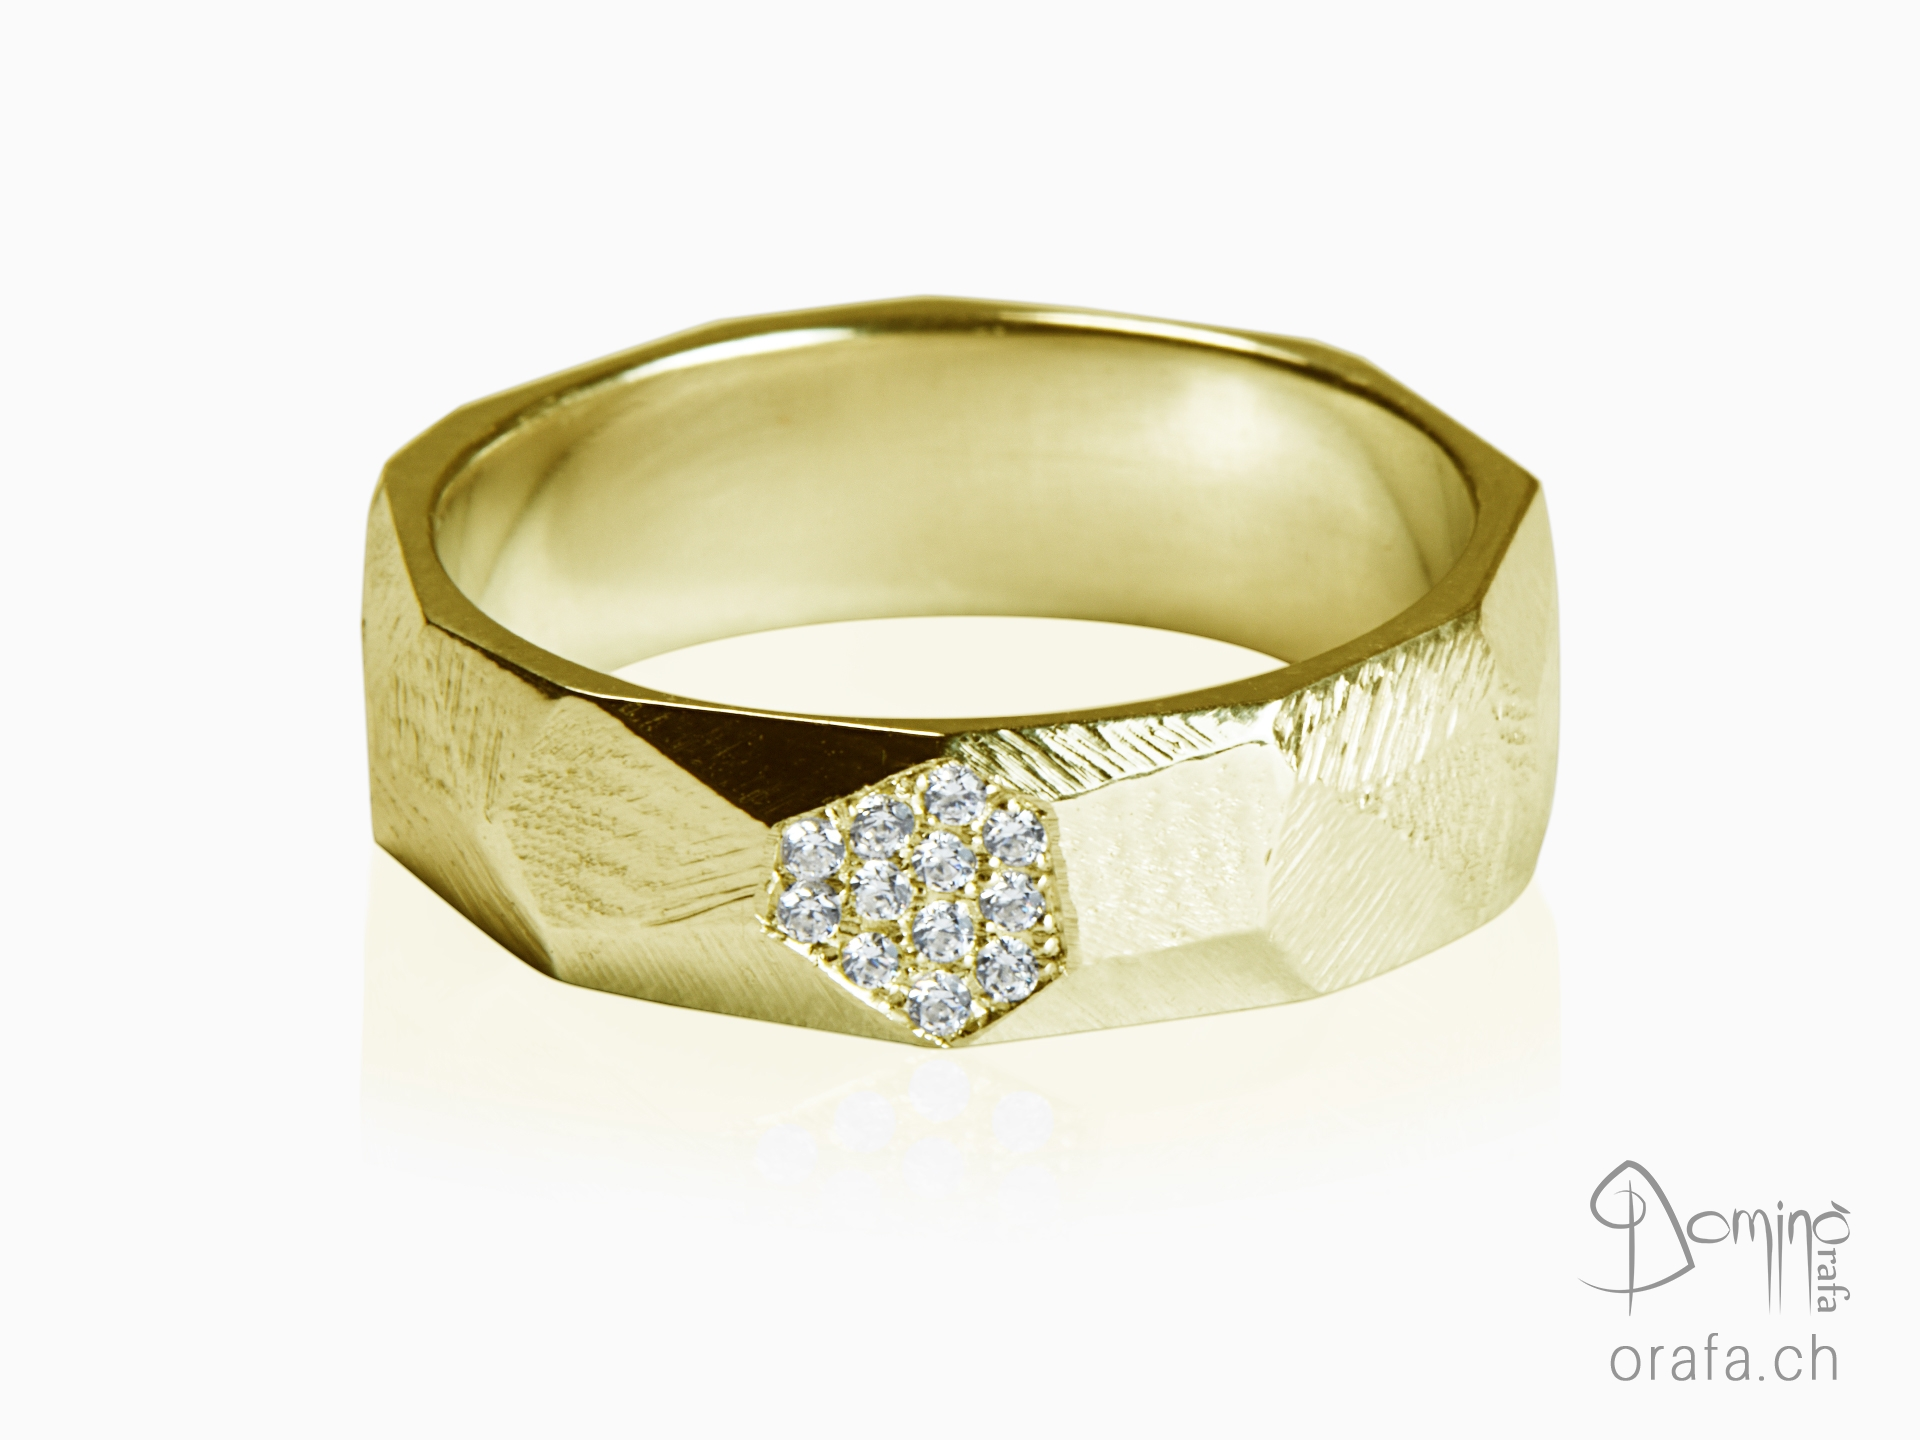 Sfaccettato ring with diamonds